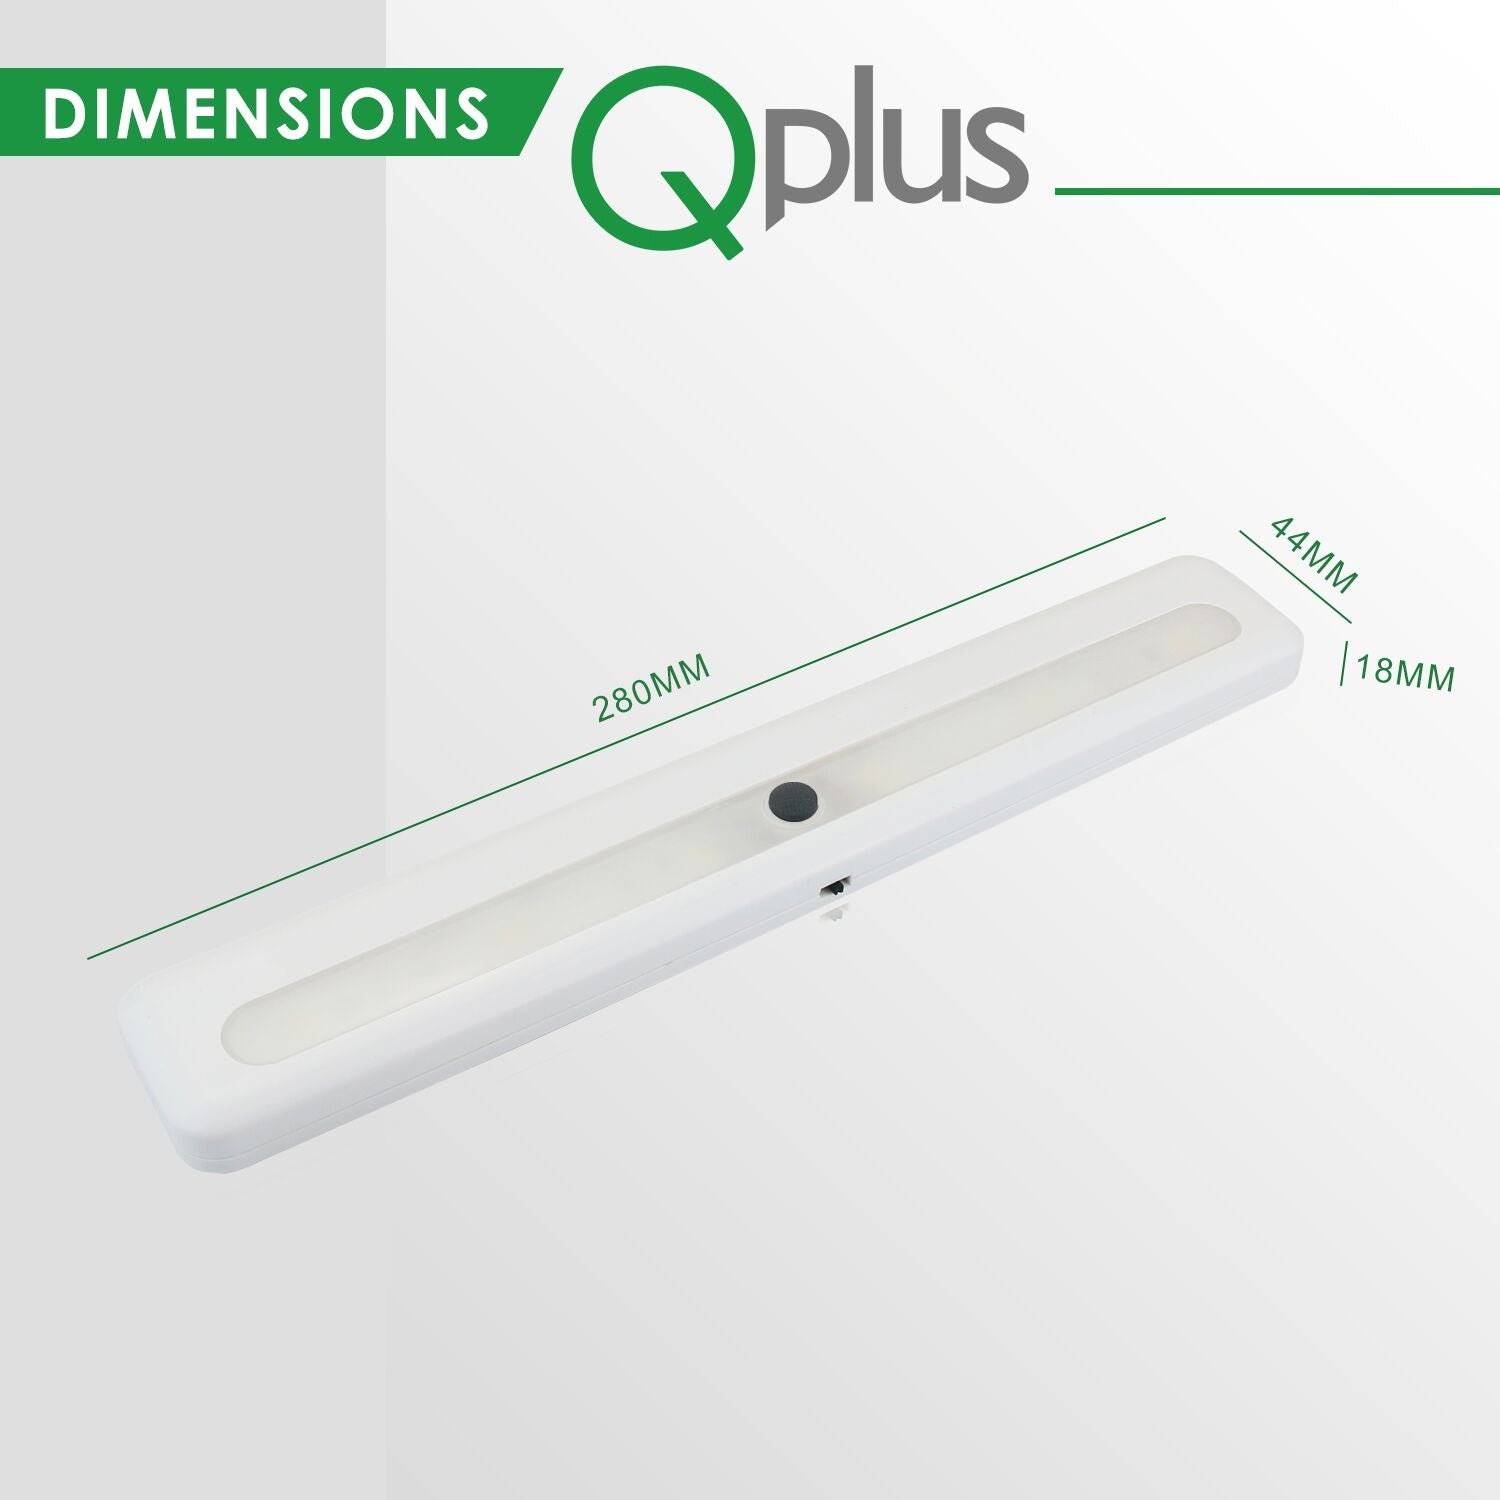 QPlus LED Under Cabinet/Closet Lights - (Set of 3) 3000K or 4000K